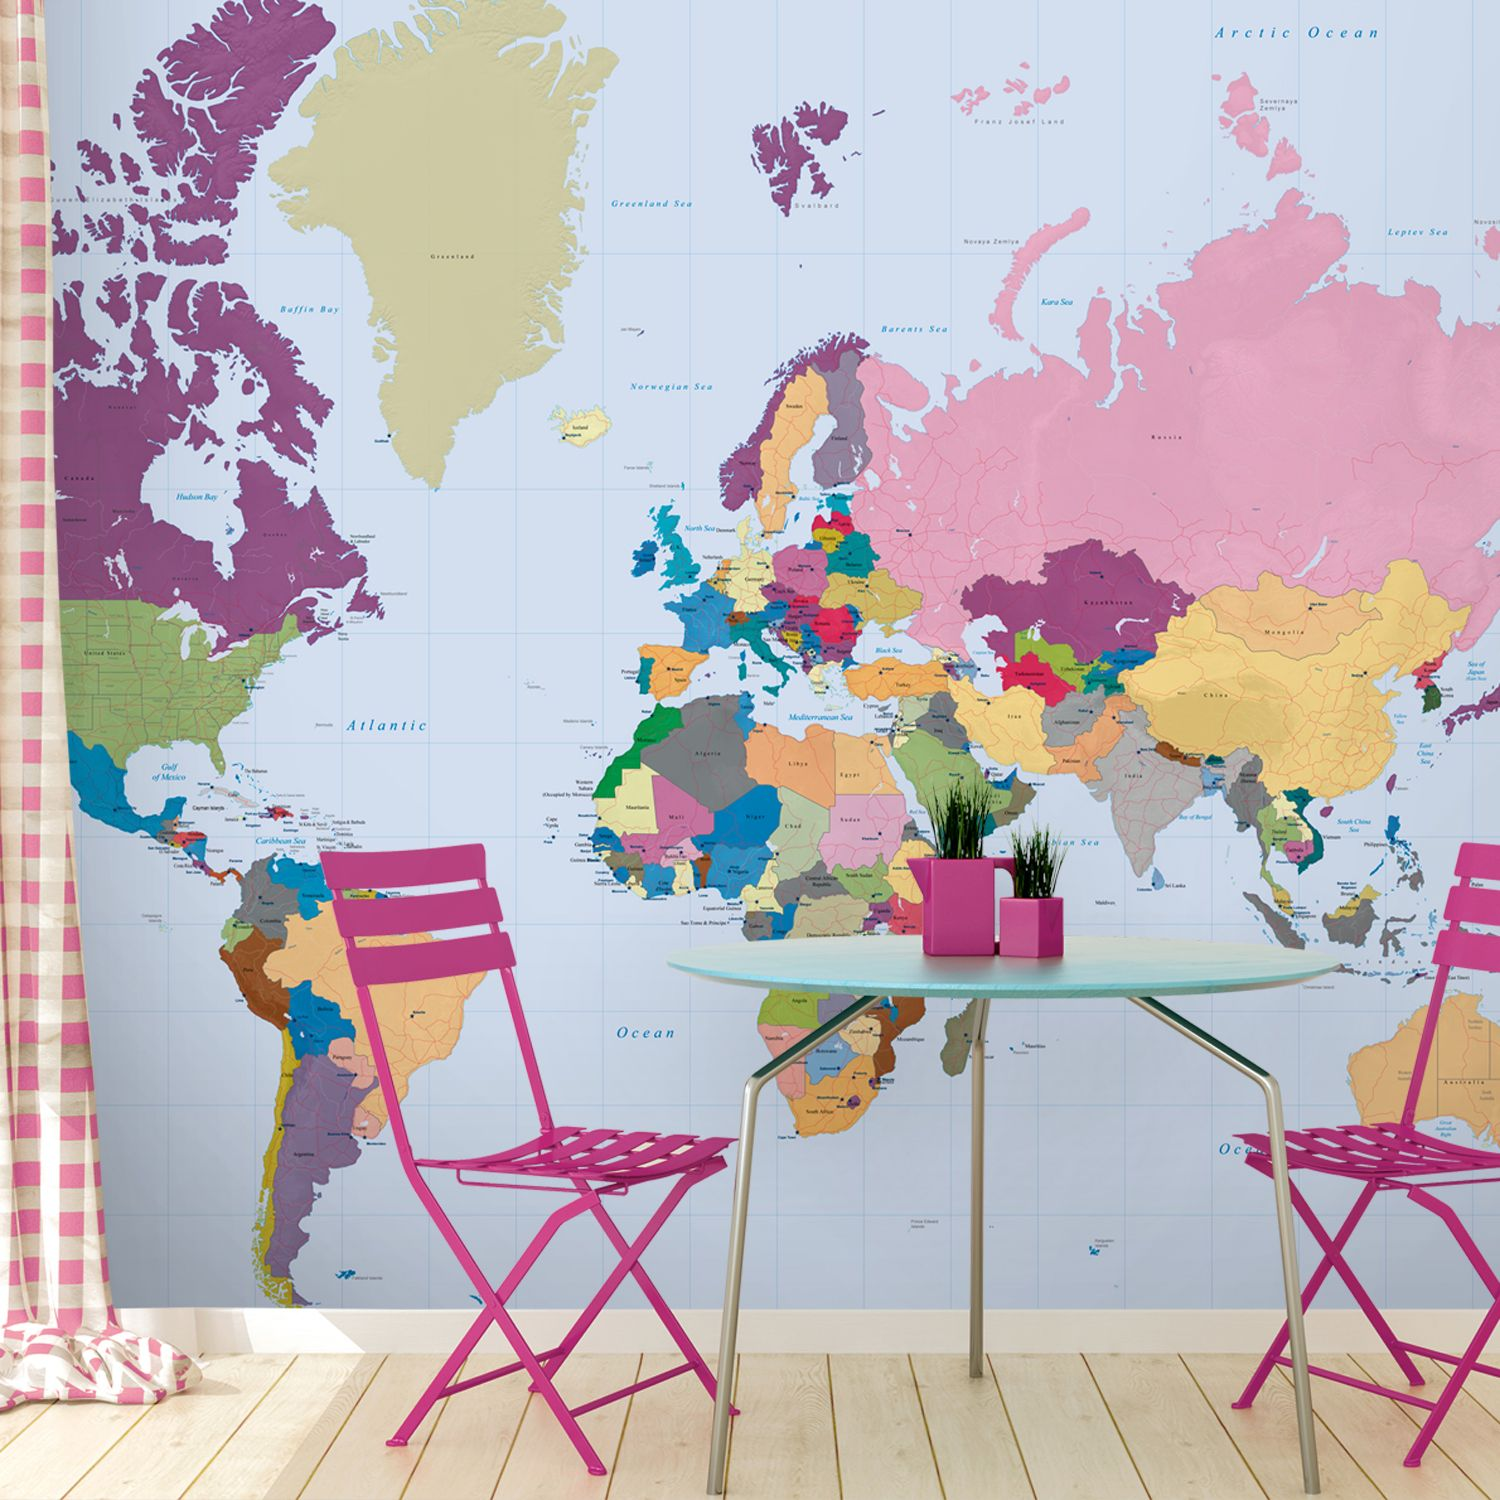 Colourful world map wallpaper home sweet home pinterest colourful world map wallpaper gumiabroncs Image collections